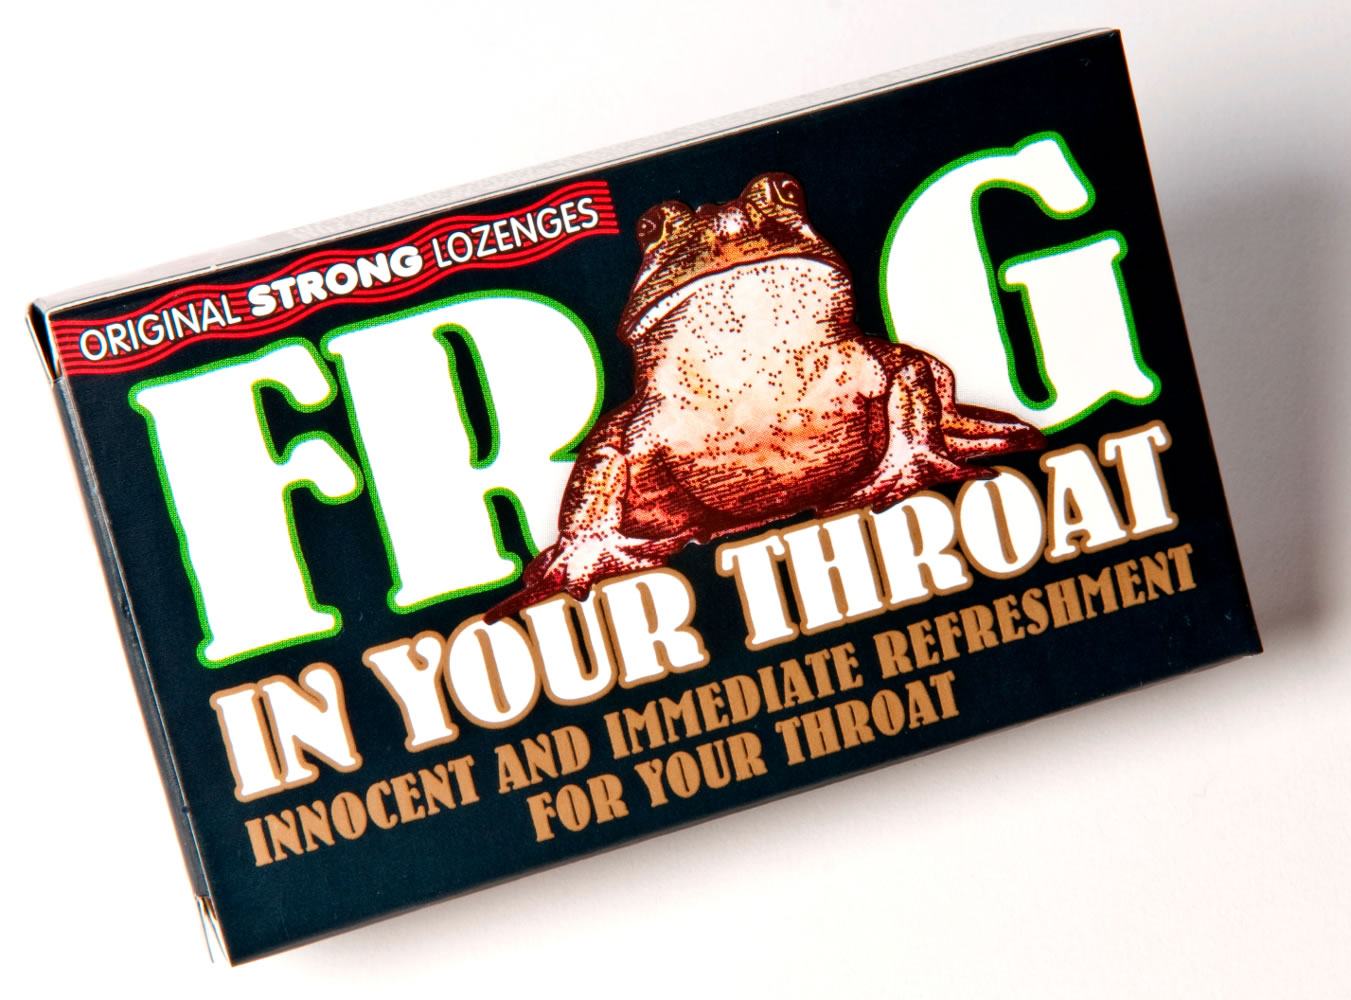 Frog in Your Throat Original Strong Lozenges